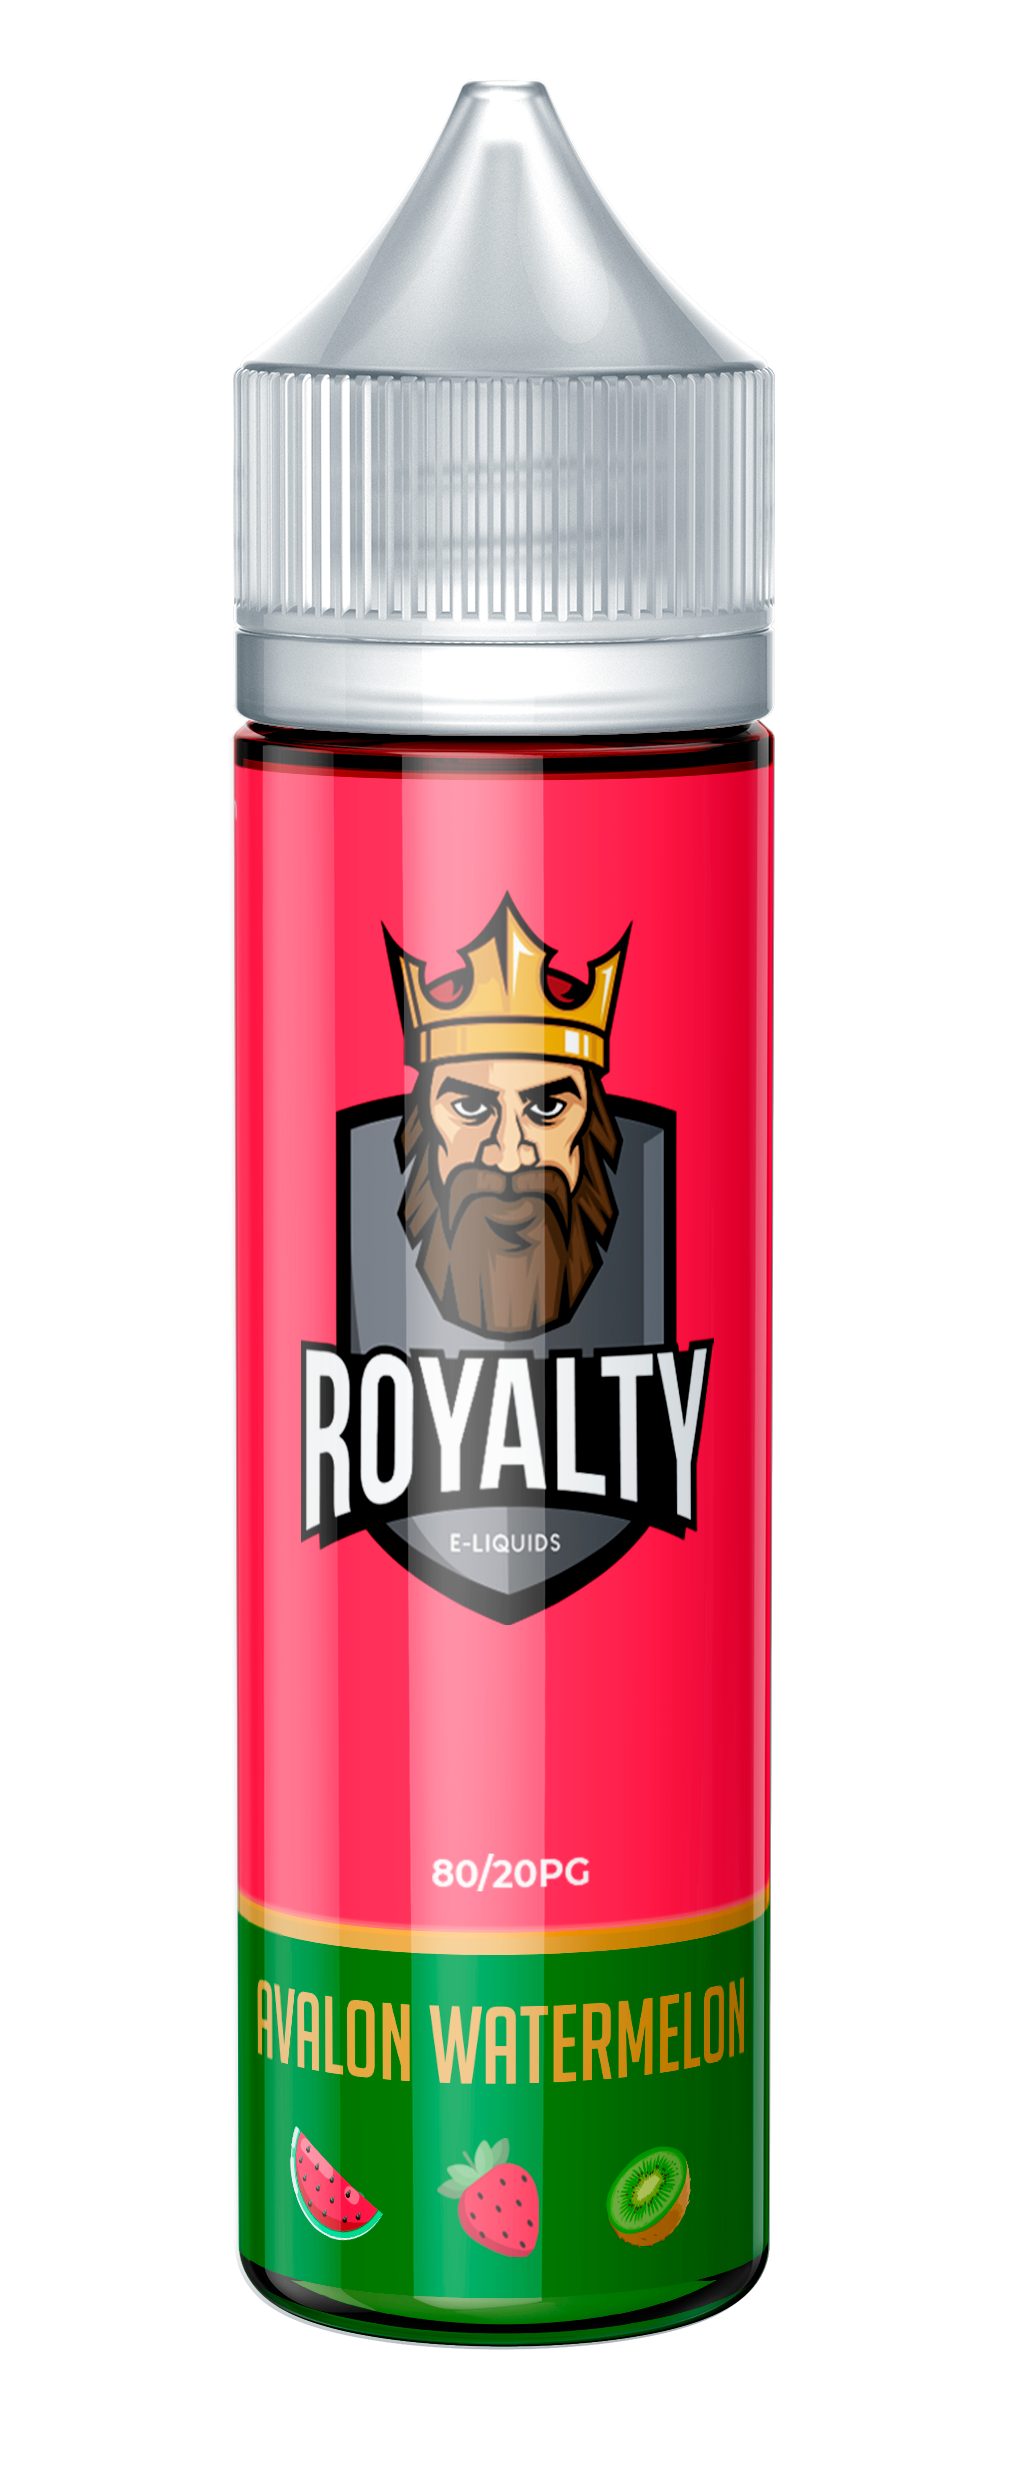 Watermelon Royalty E-liquids